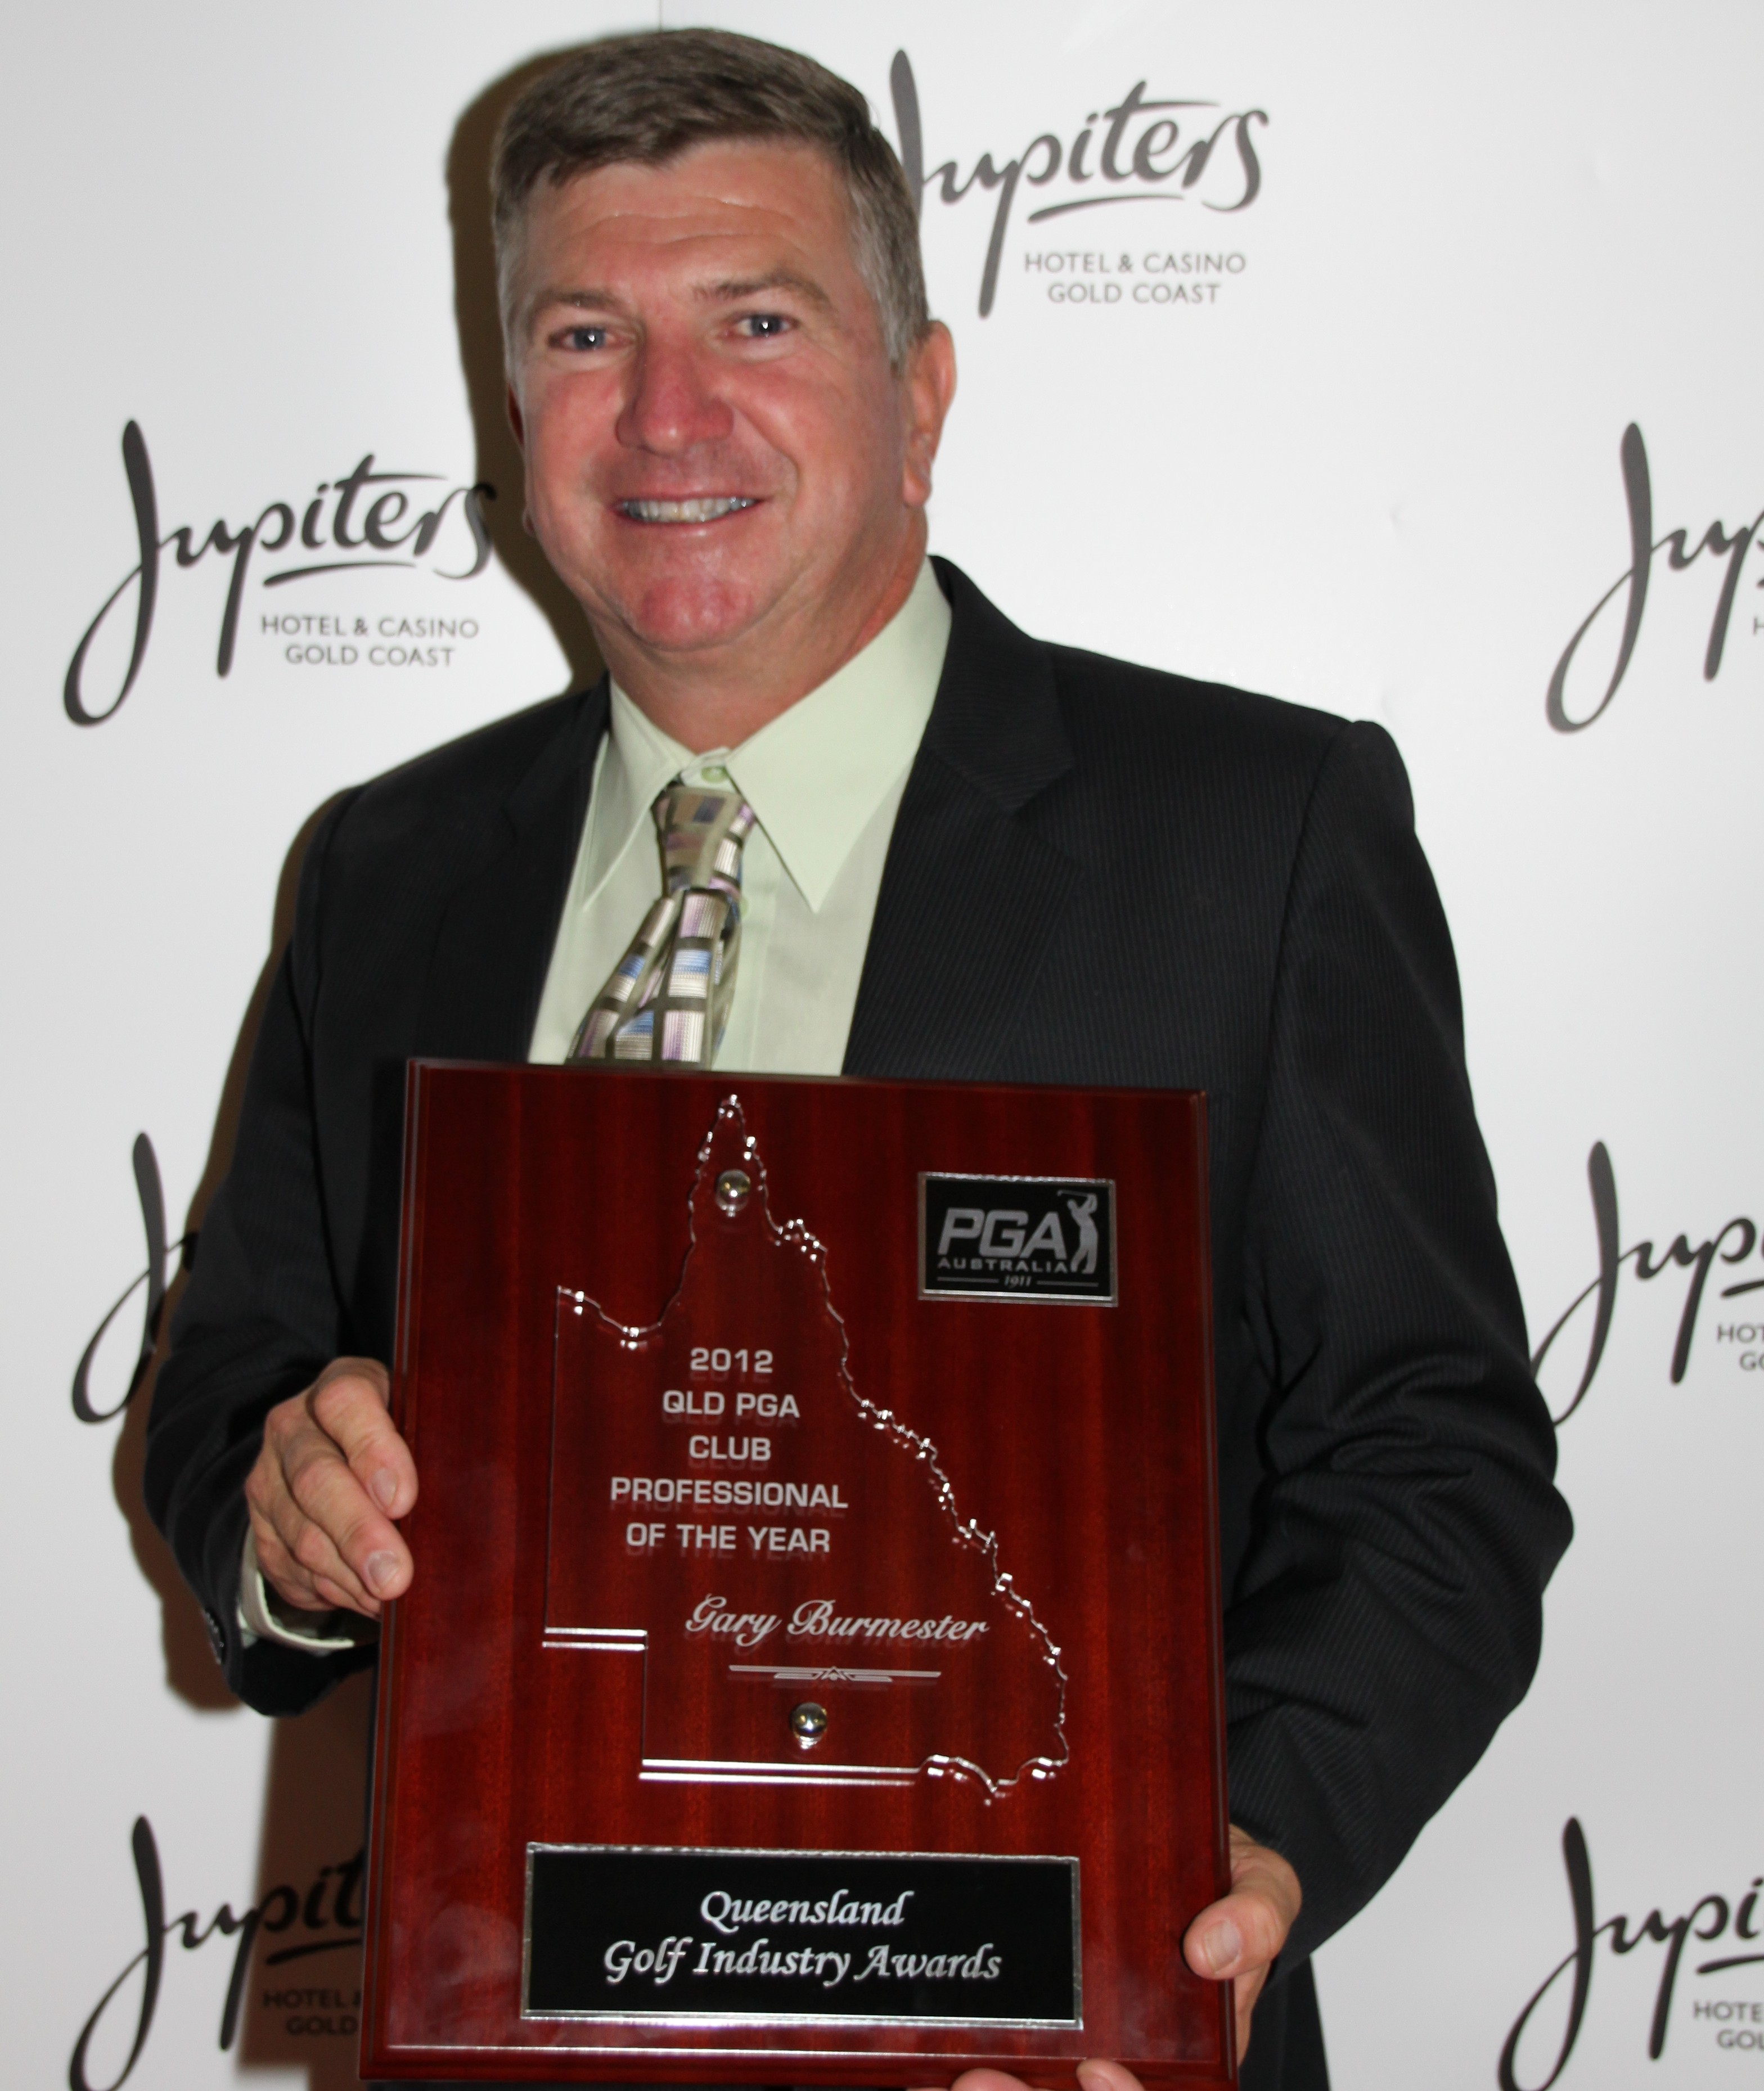 Gary Burmester – Club Professional of the Year